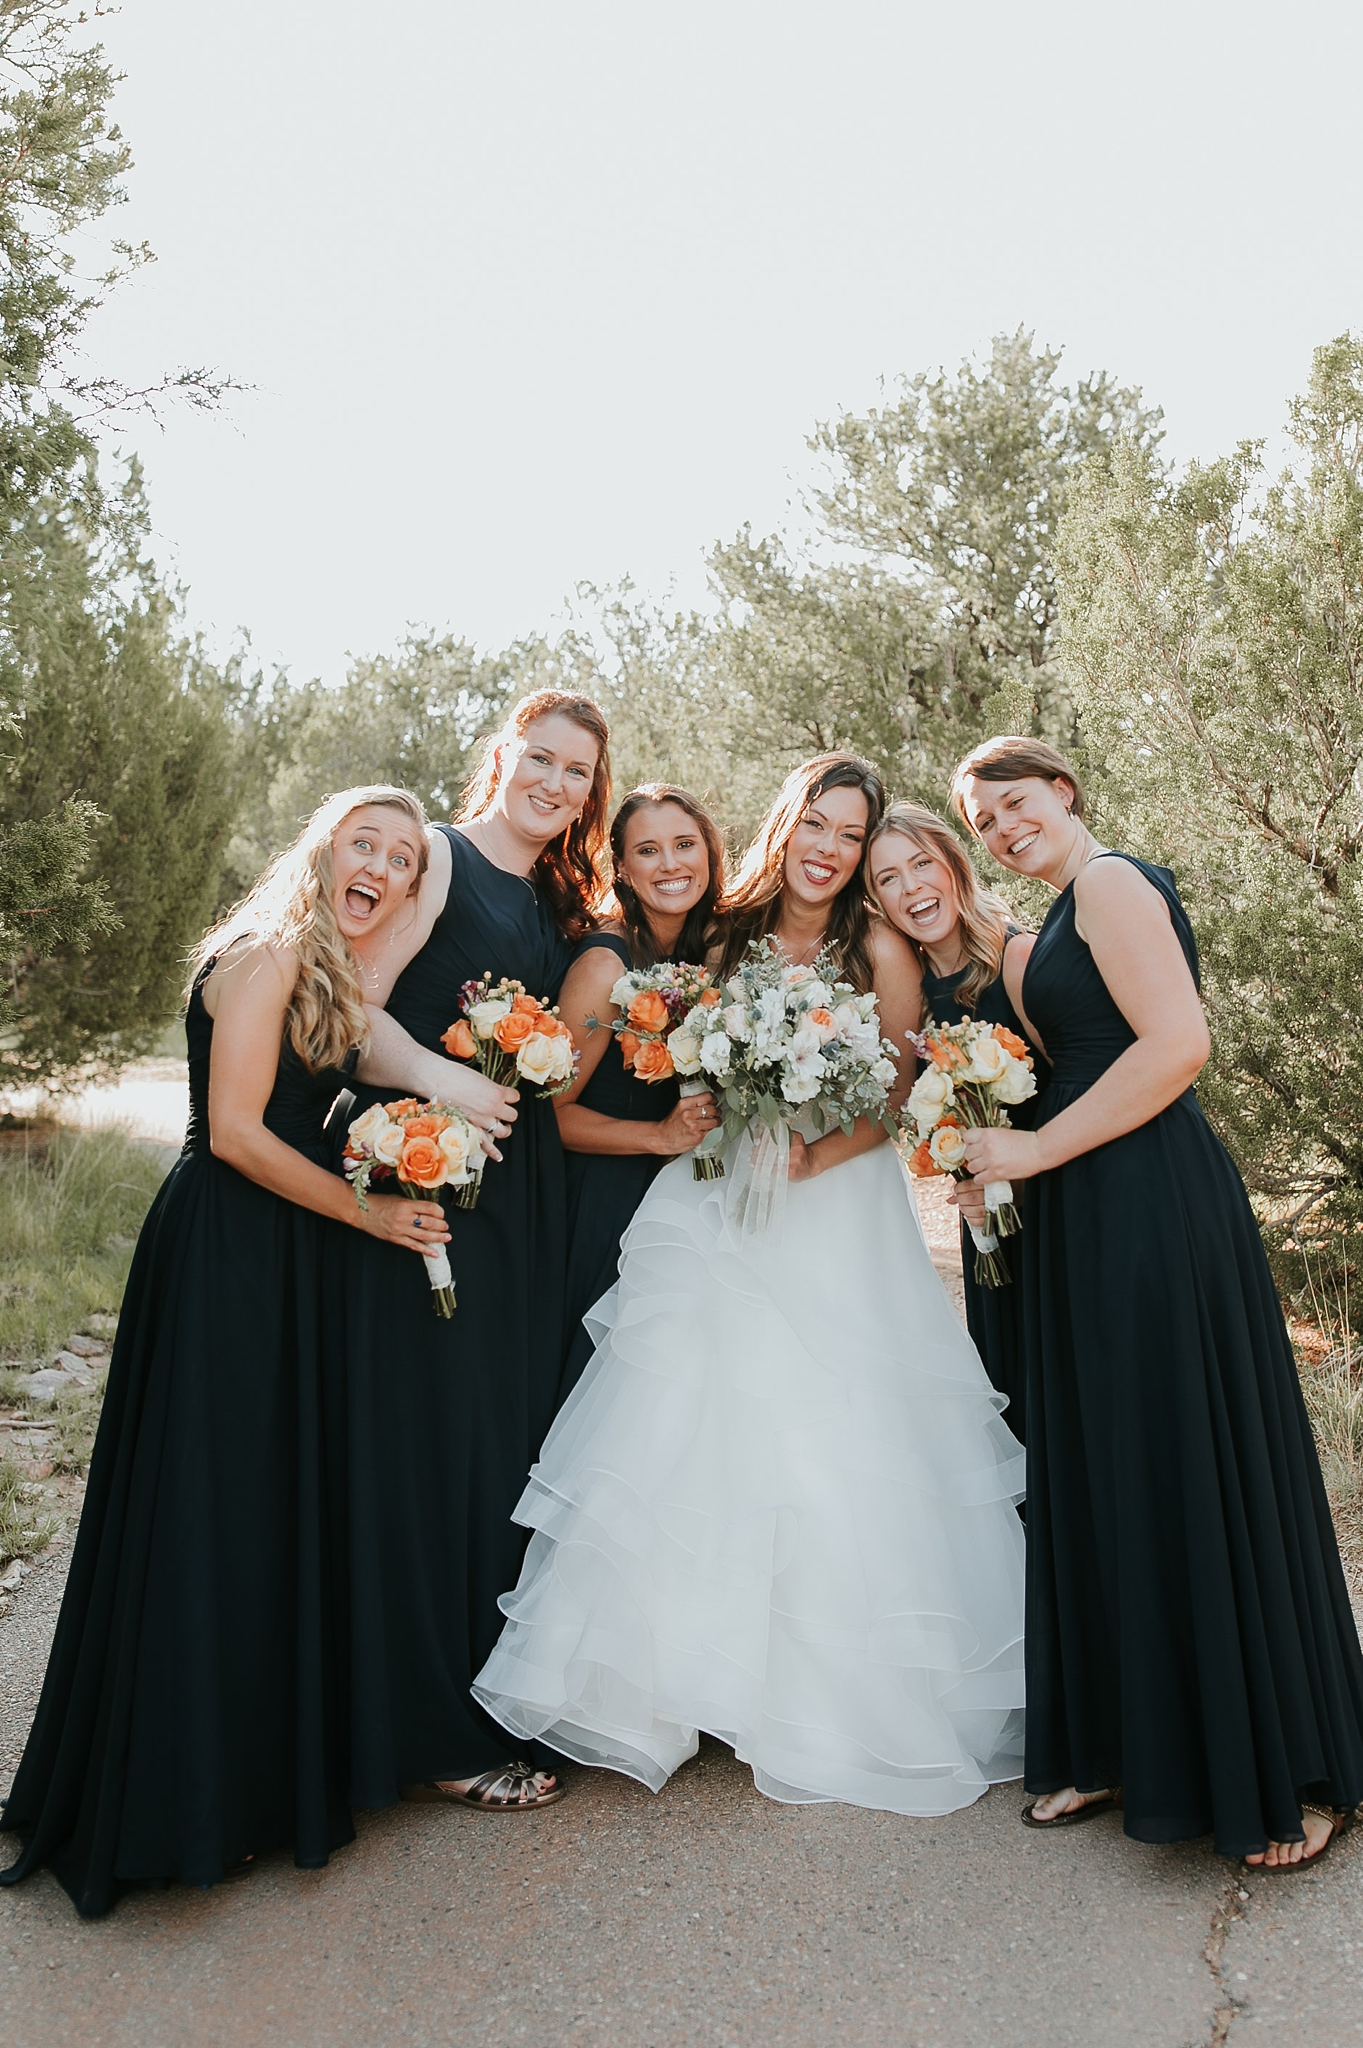 Alicia+lucia+photography+-+albuquerque+wedding+photographer+-+santa+fe+wedding+photography+-+new+mexico+wedding+photographer+-+new+mexico+wedding+-+new+mexico+wedding+-+colorado+wedding+-+bridesmaids+-+bridesmaid+style_0028.jpg